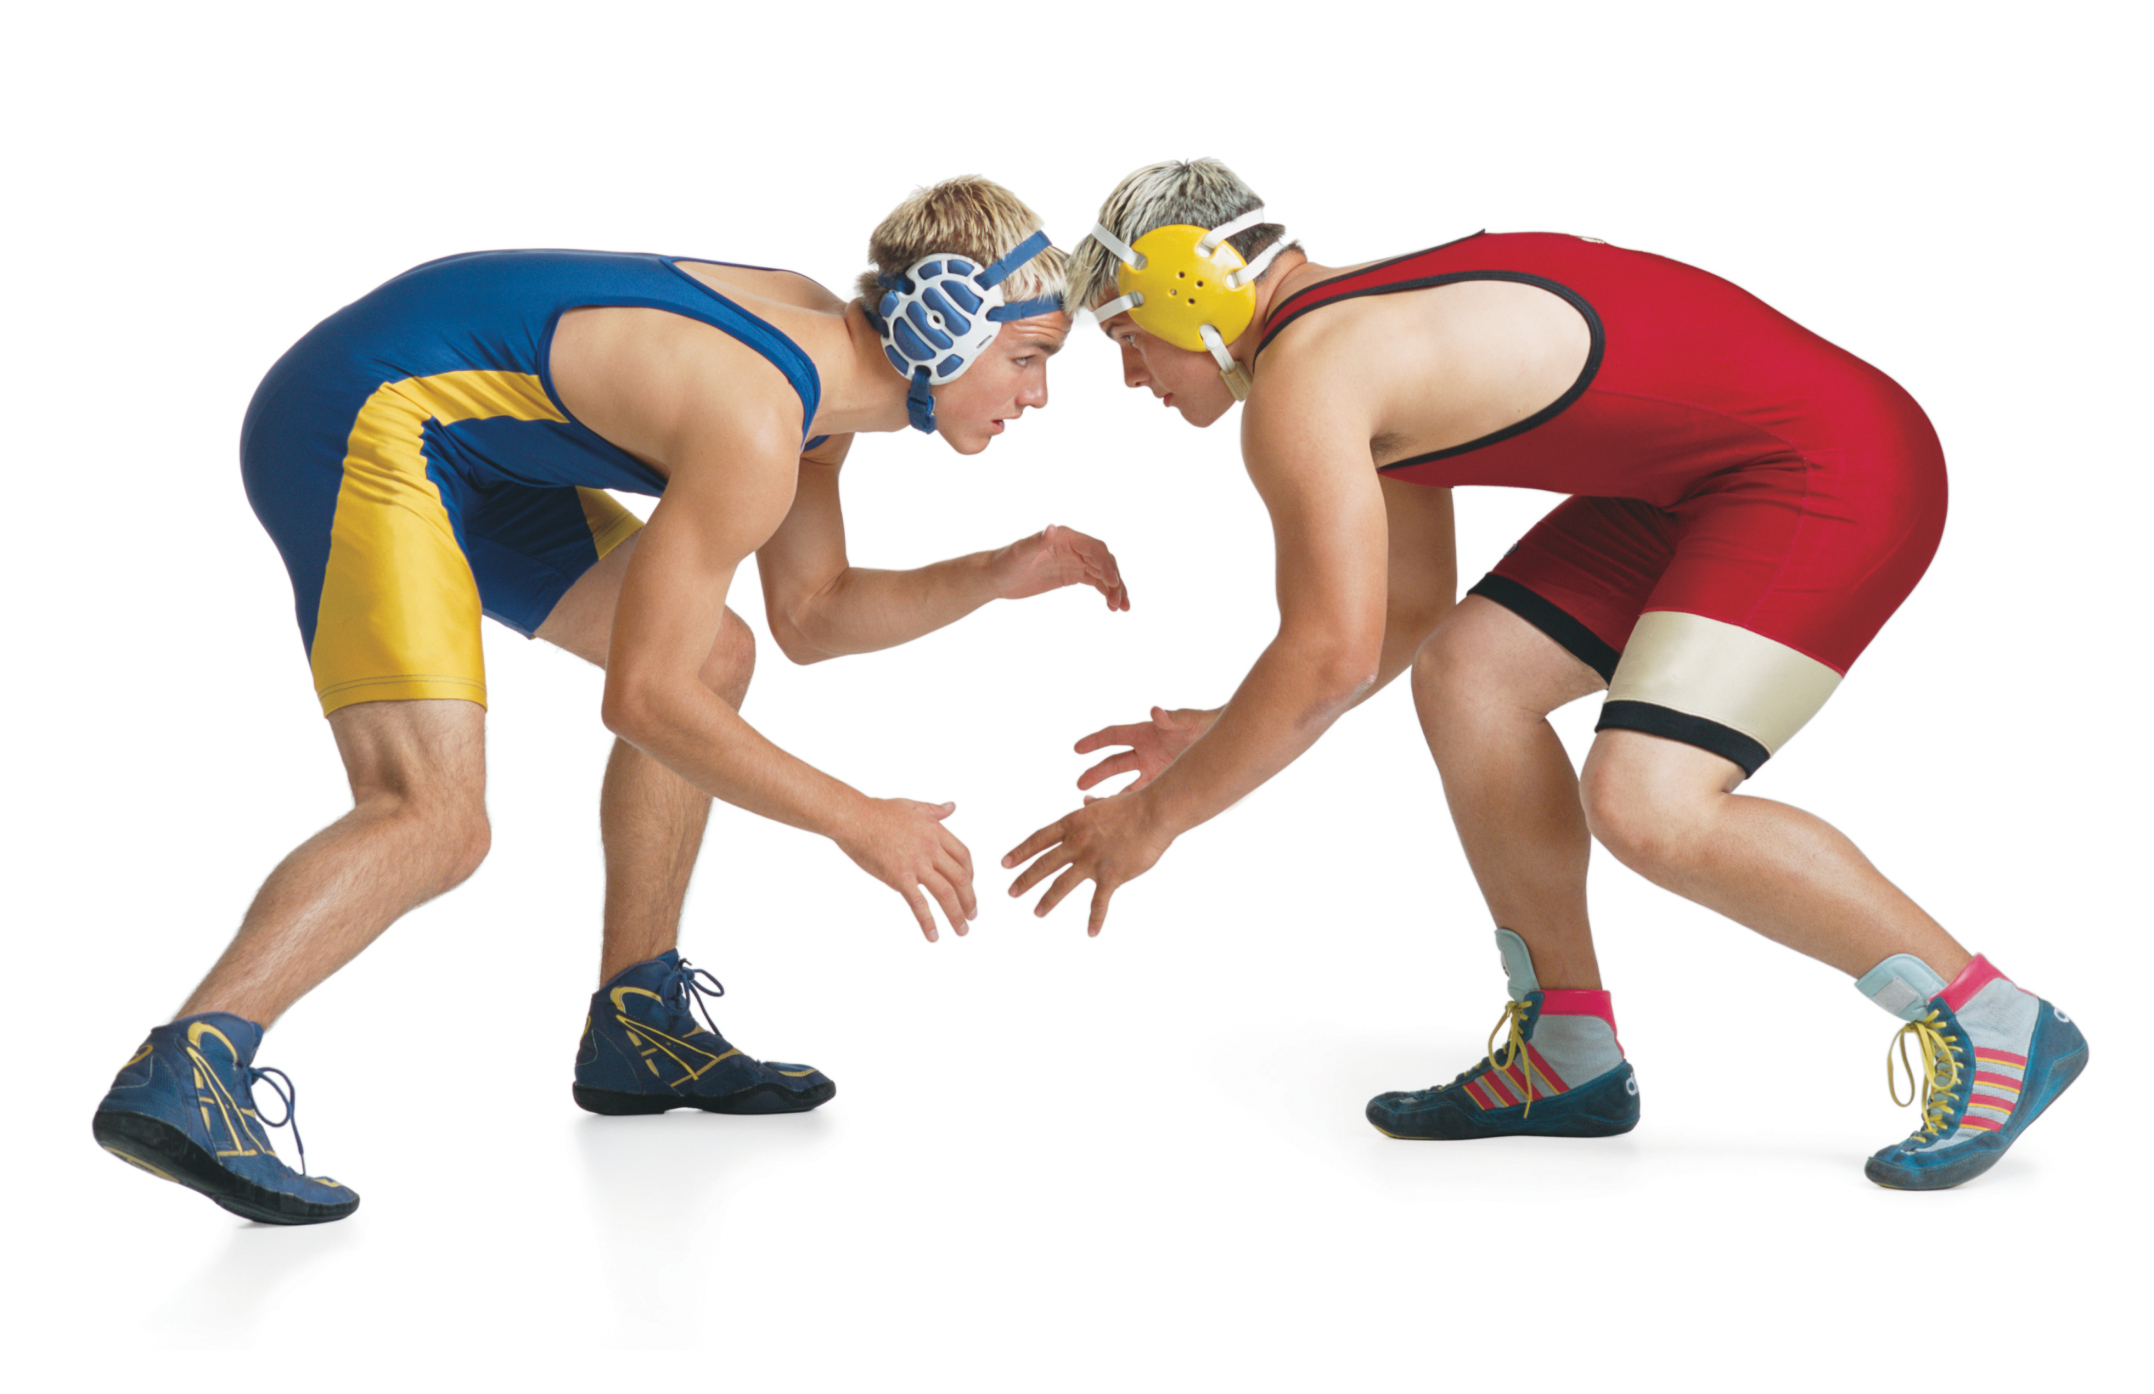 Conditioning Drills for Wrestling